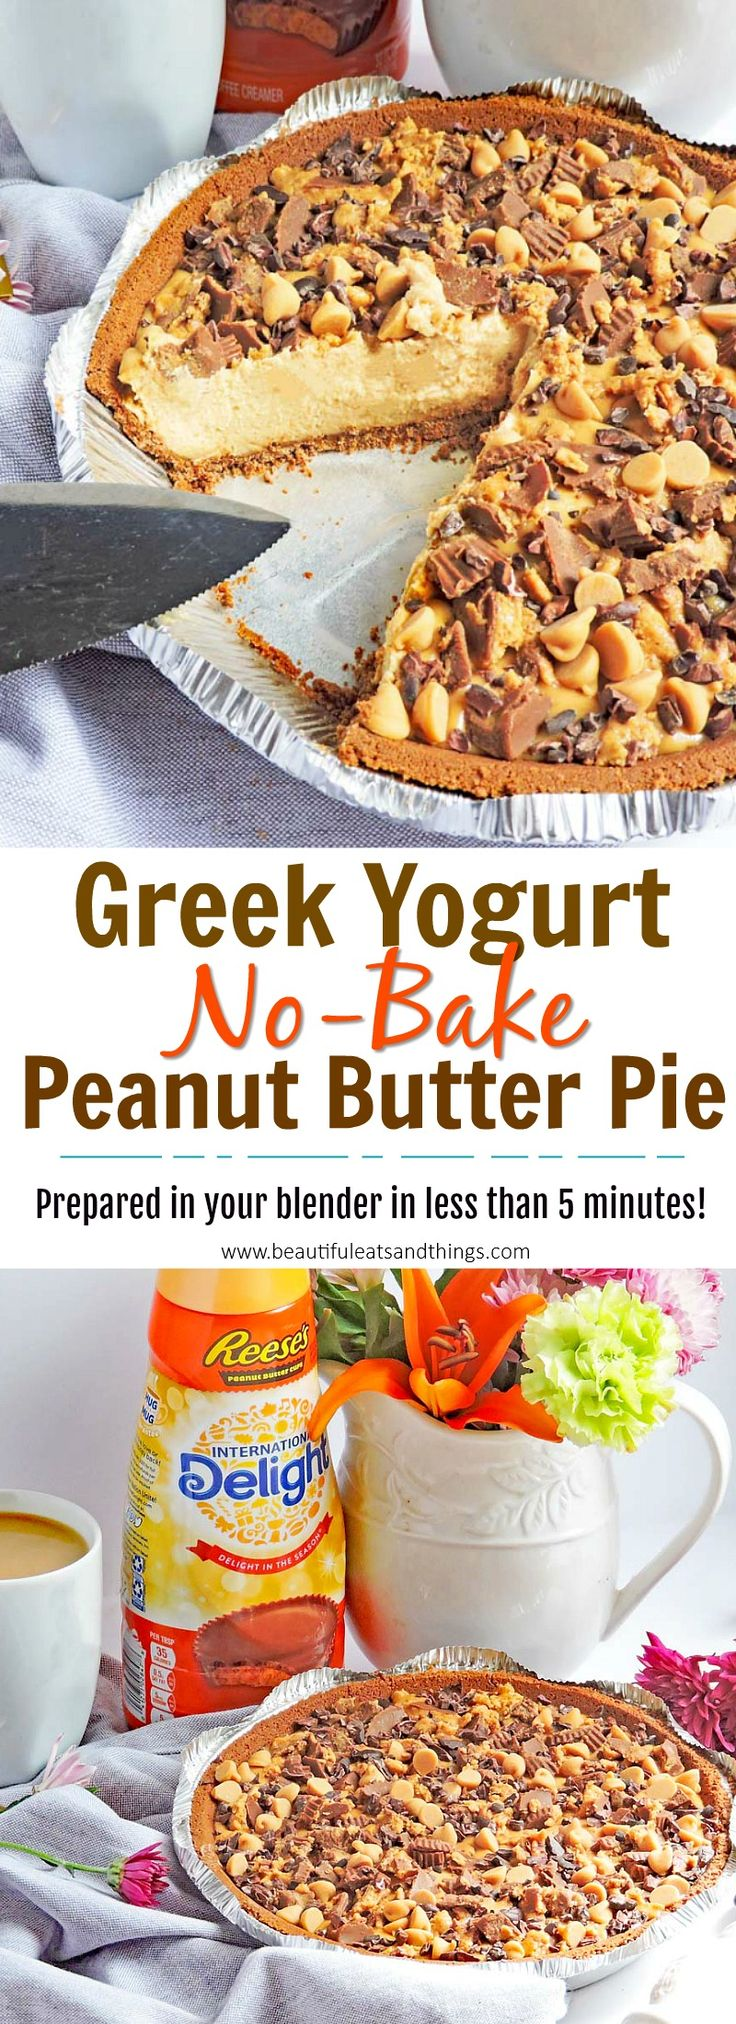 No-Bake Greek Yogurt Peanut Butter Pie  – Yum- Dessert